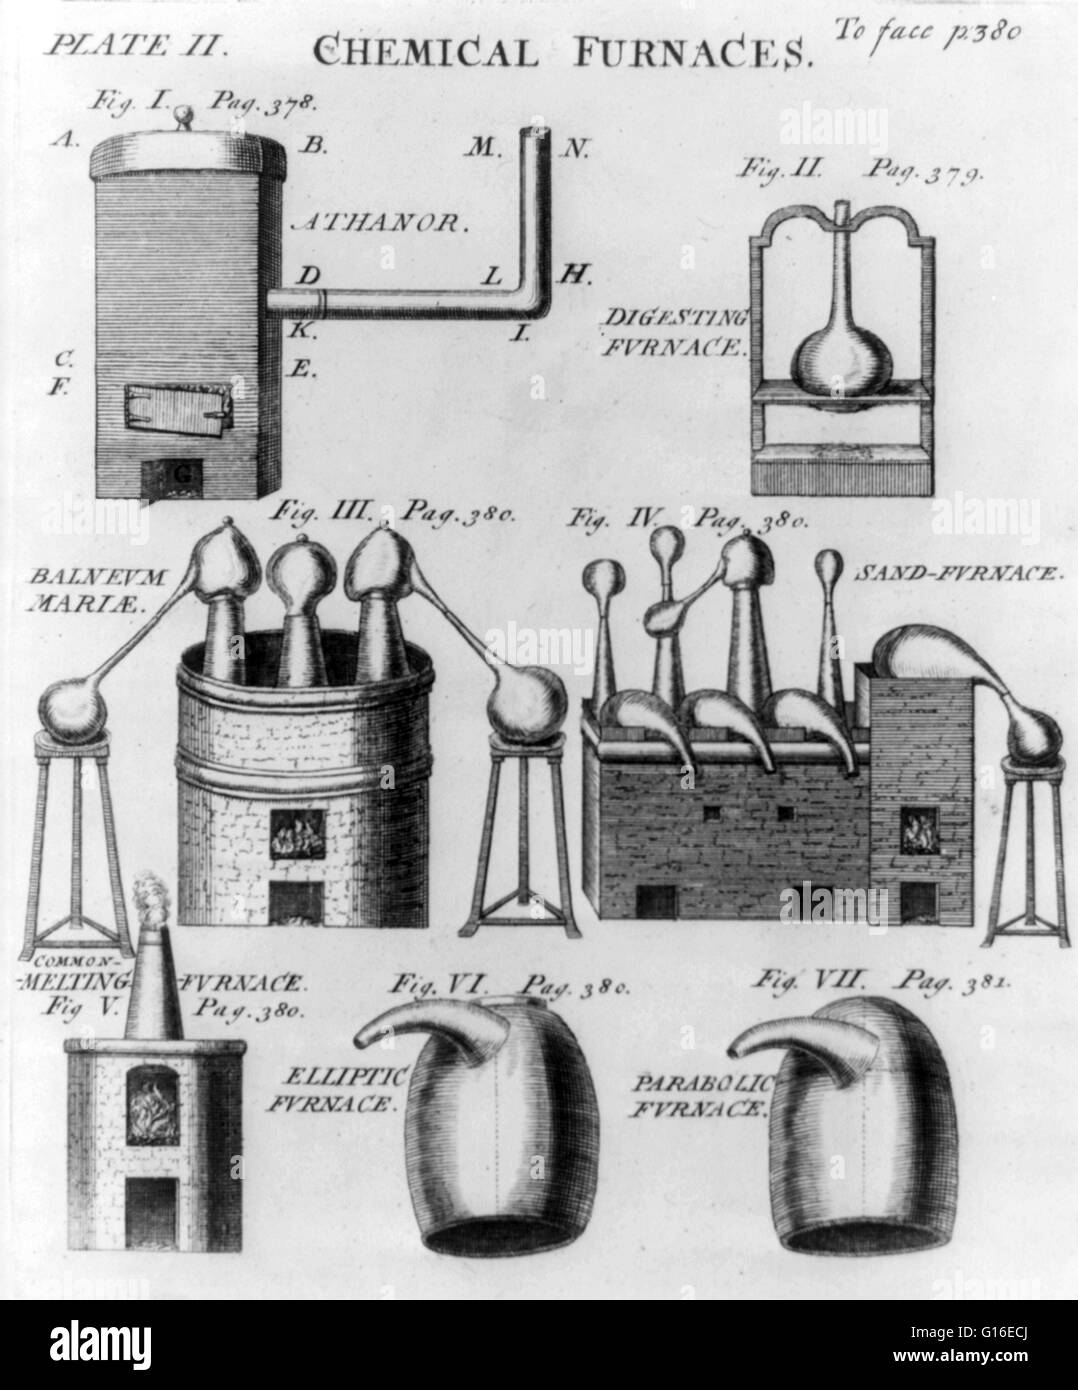 entitled  quot chemical furnaces  quot  shows a variety of